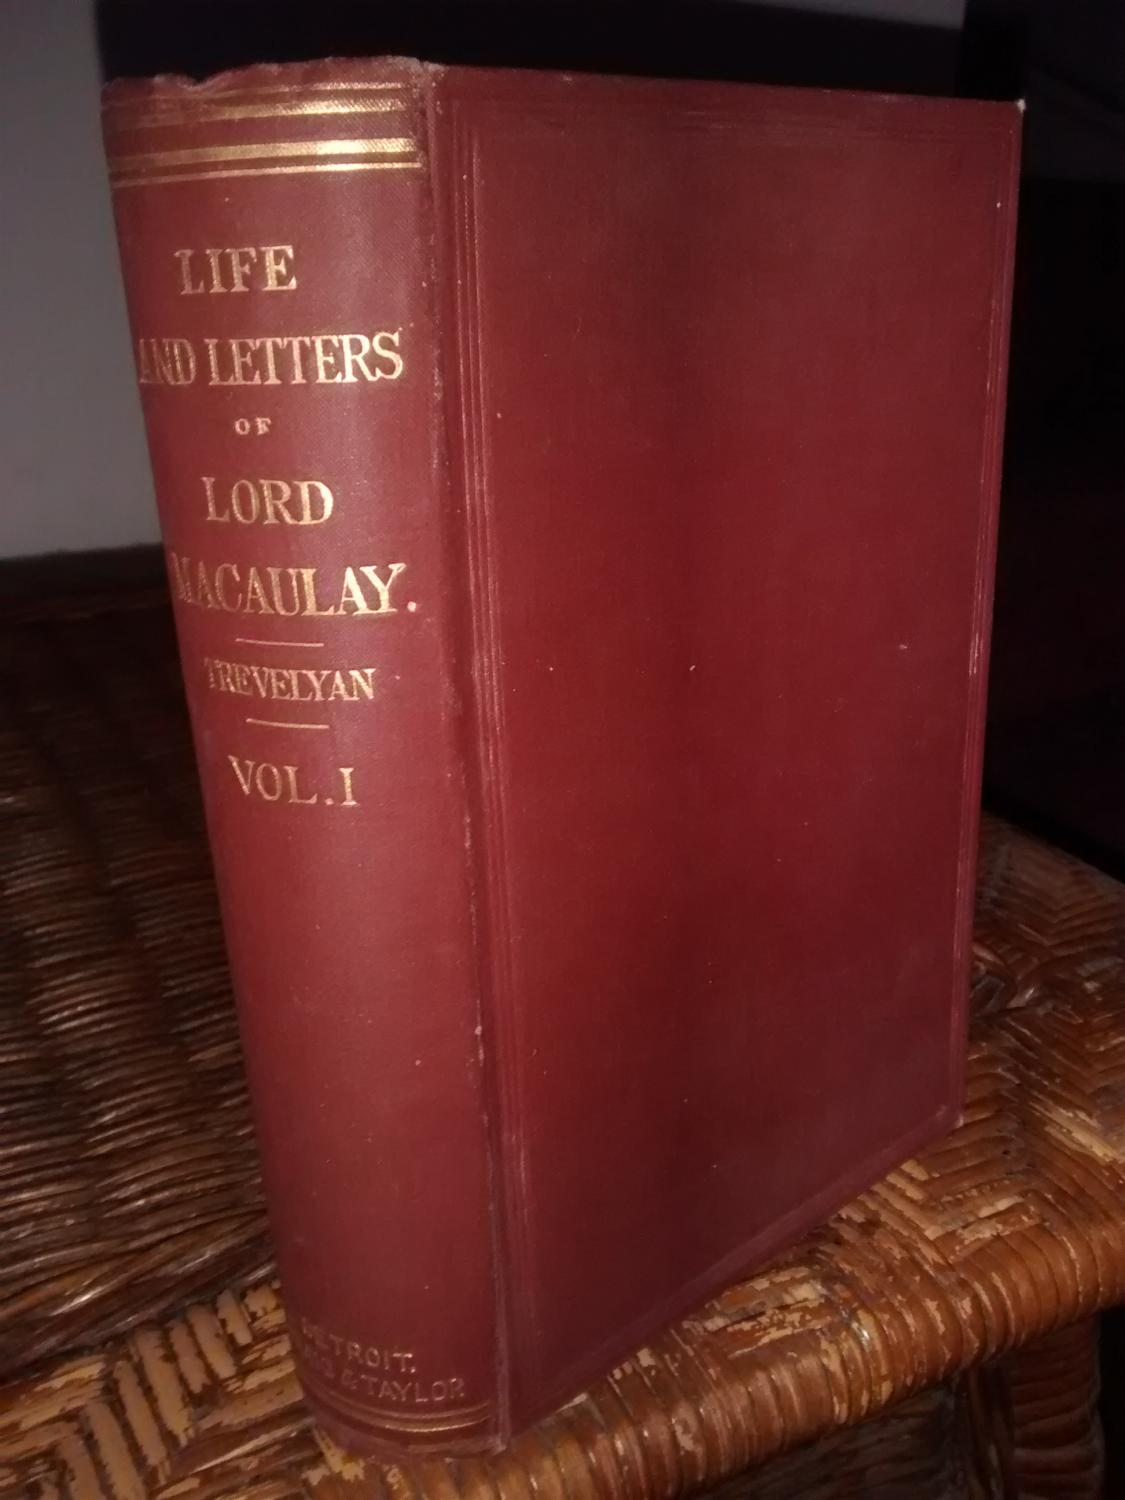 5bb3beca6b8de9 LIFE AND LETTERS OF LORD MACAULAY Volume 1 by GEORGE OTTO TREVELYAN ...